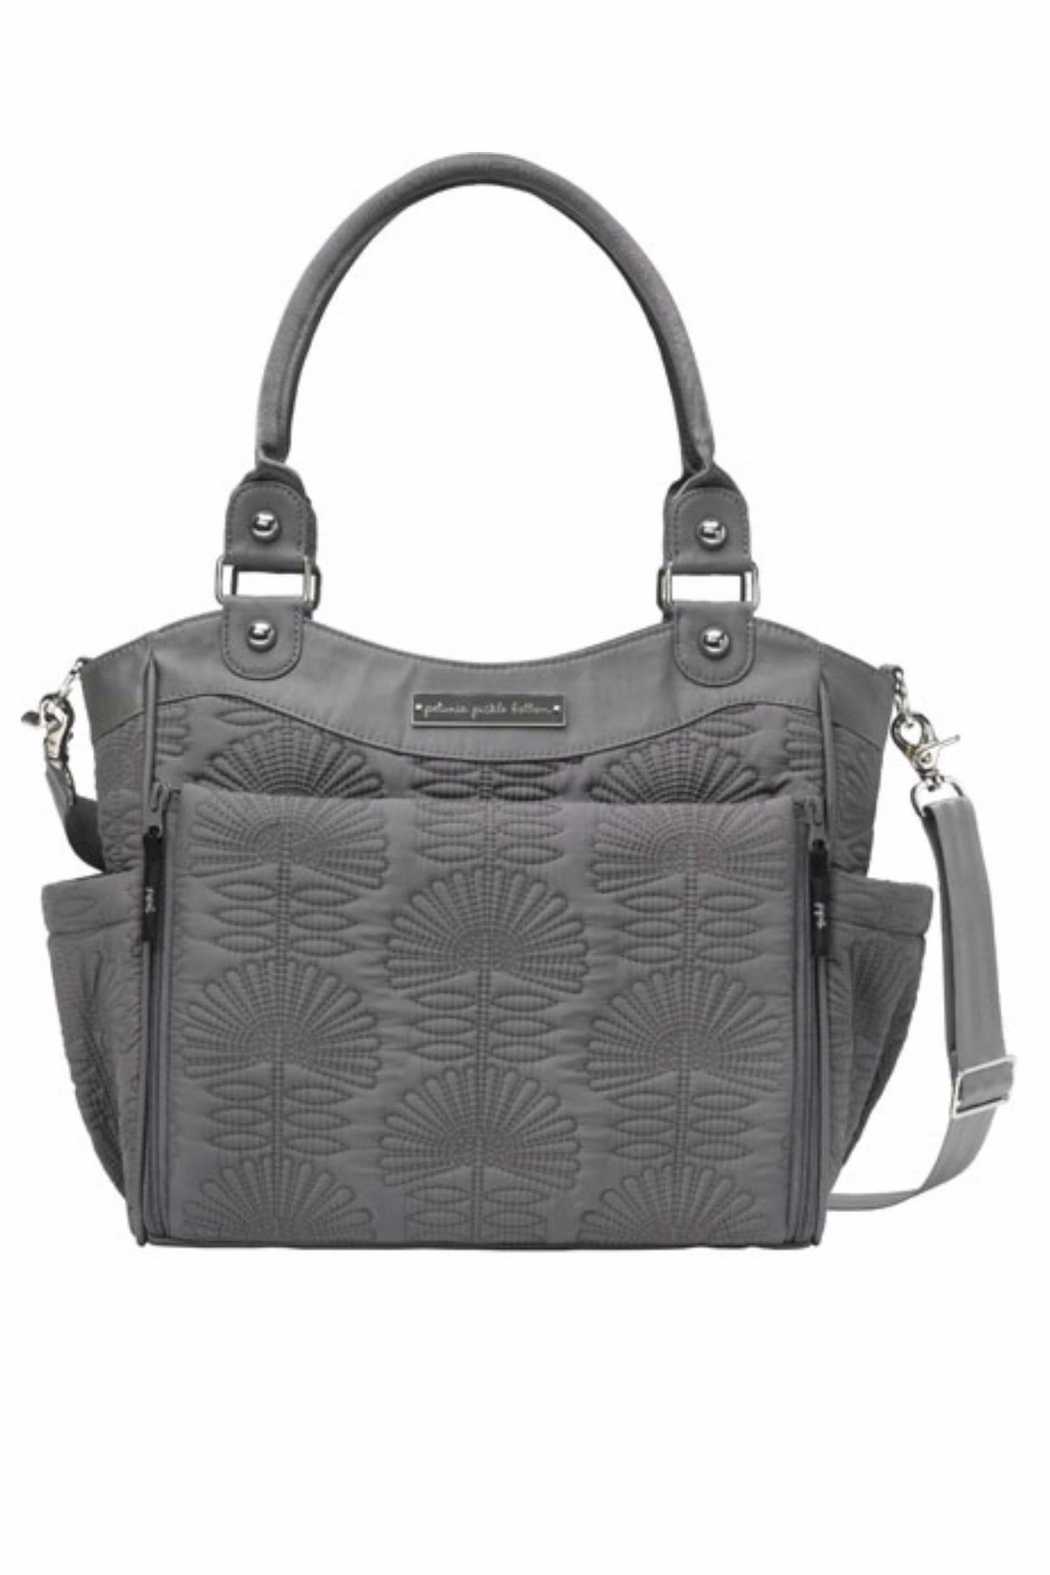 Petunia Pickle Bottom City Carryall Diaper Bag from Iowa by Peekaboo ... 9b3e8f380a2f8